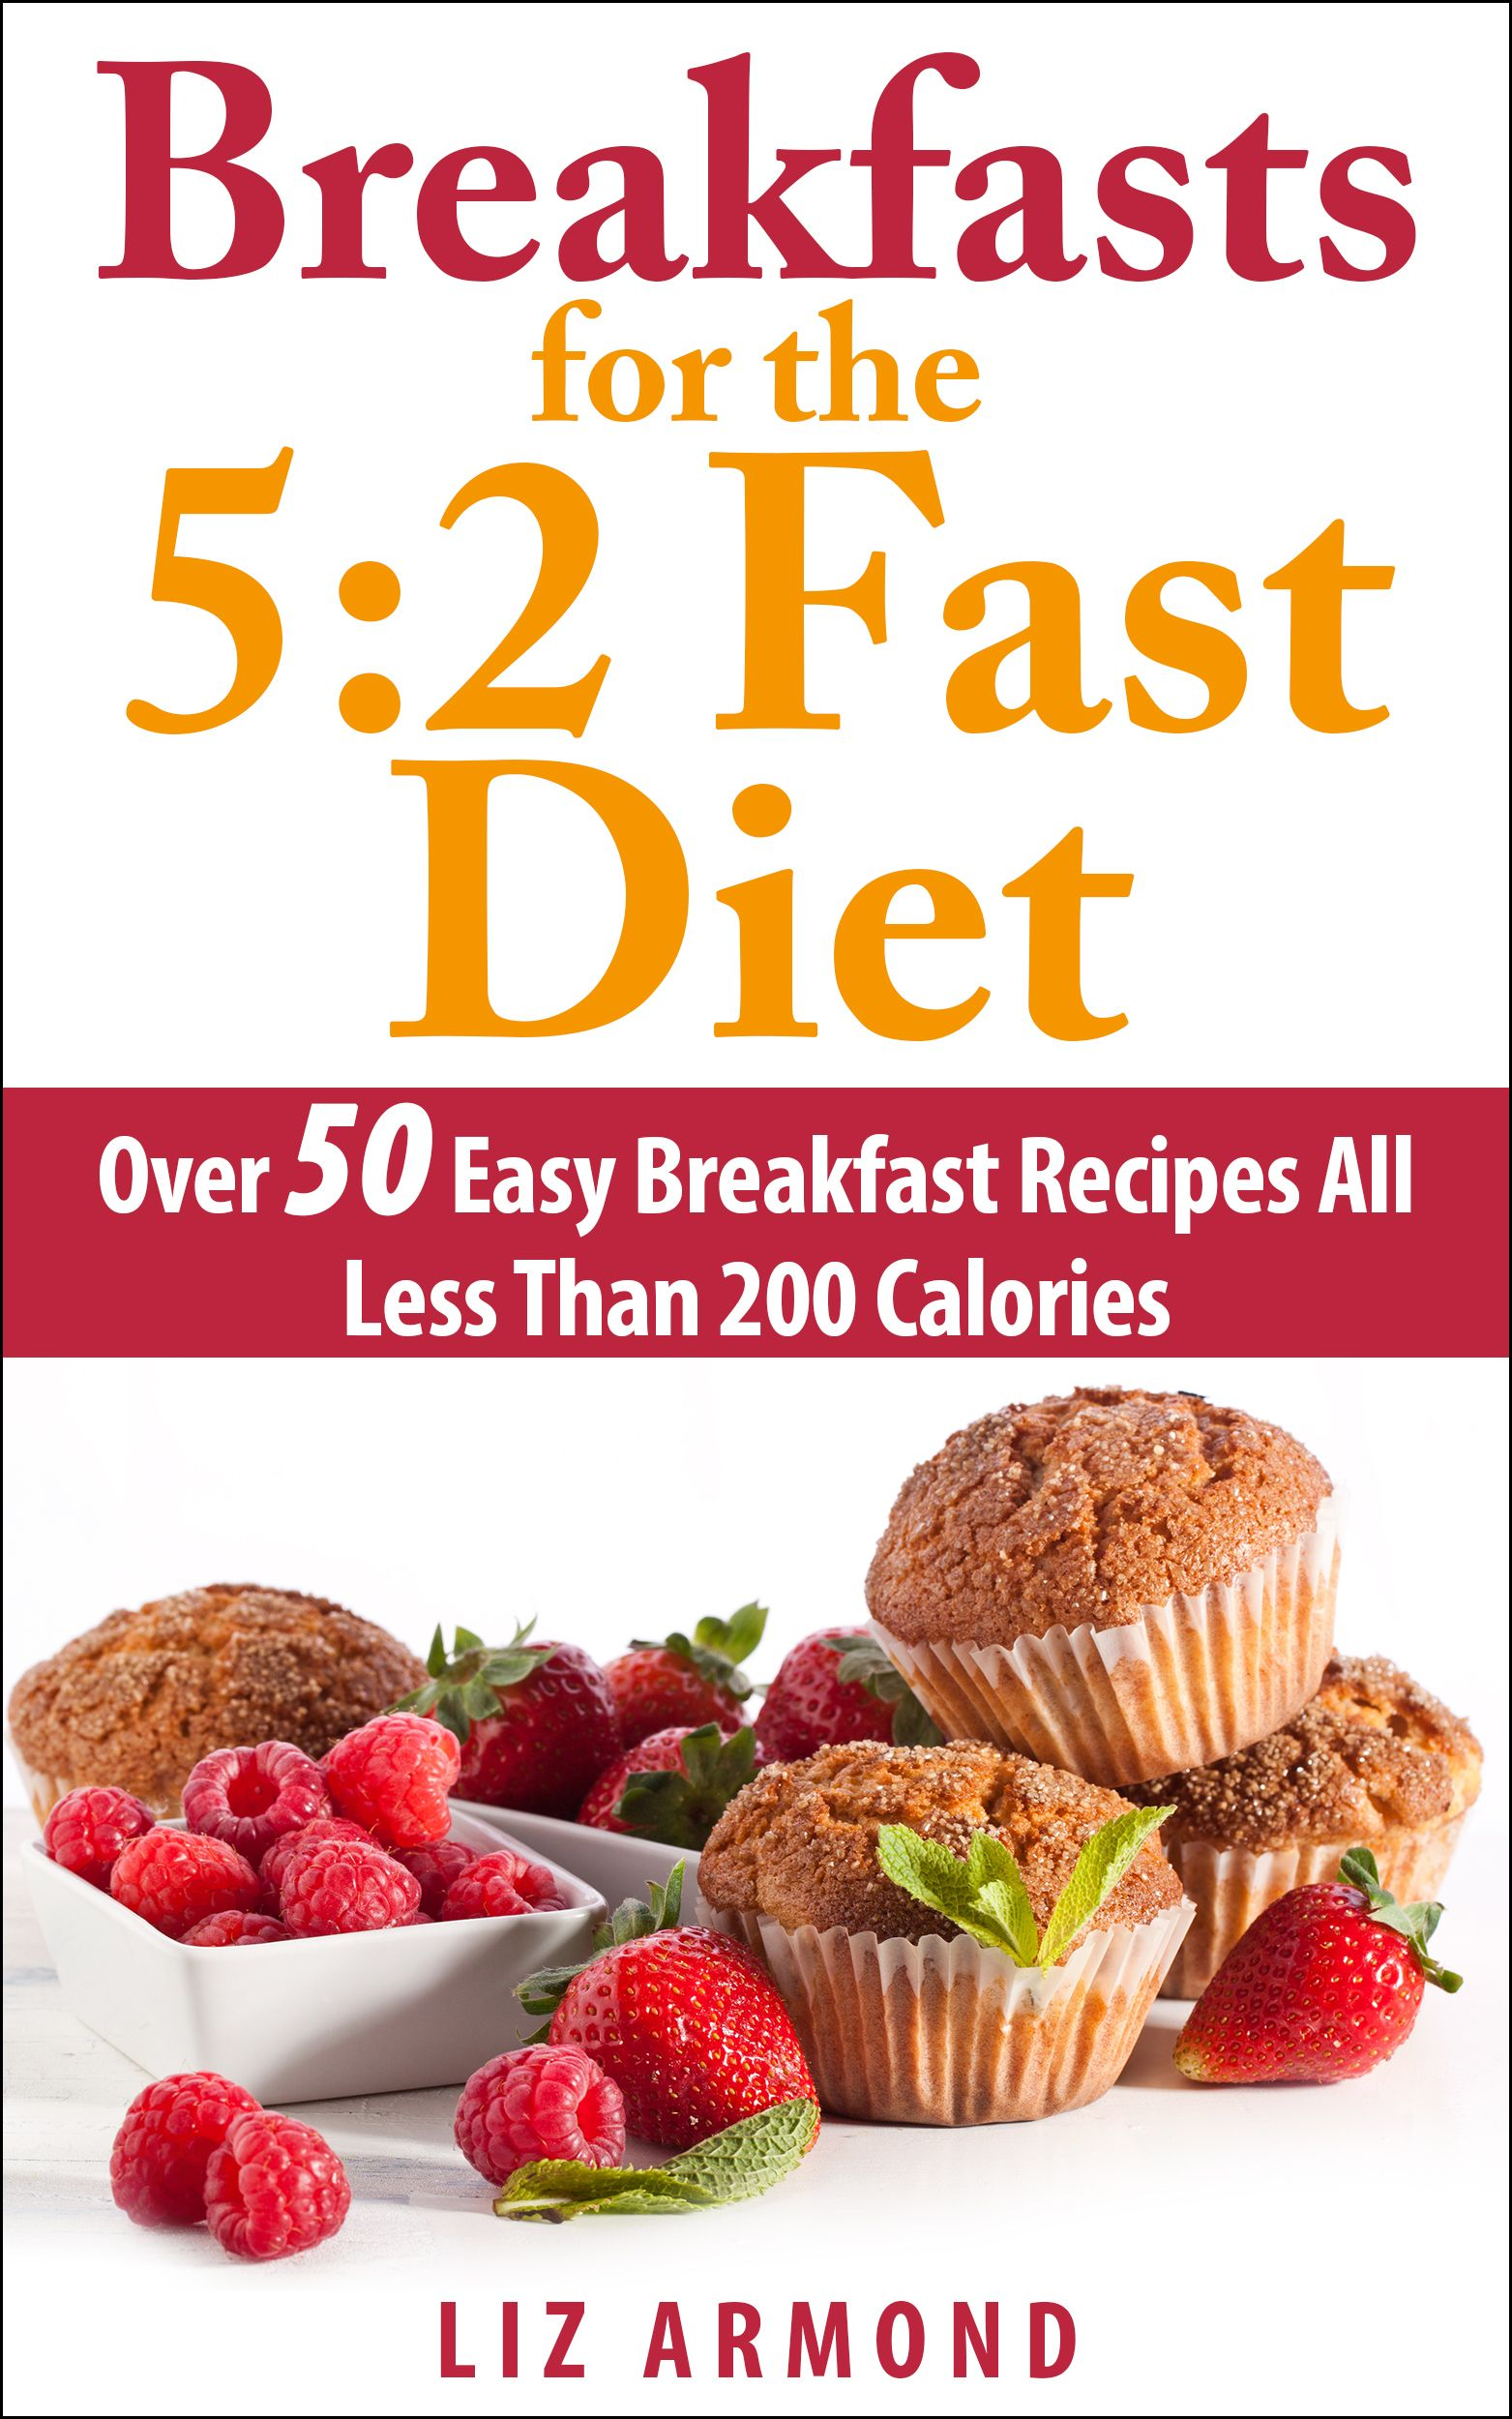 Food Recipe Calorie Calculator Pin By Linda Lightfoot On 5 2 Diet Diet 200 Calorie